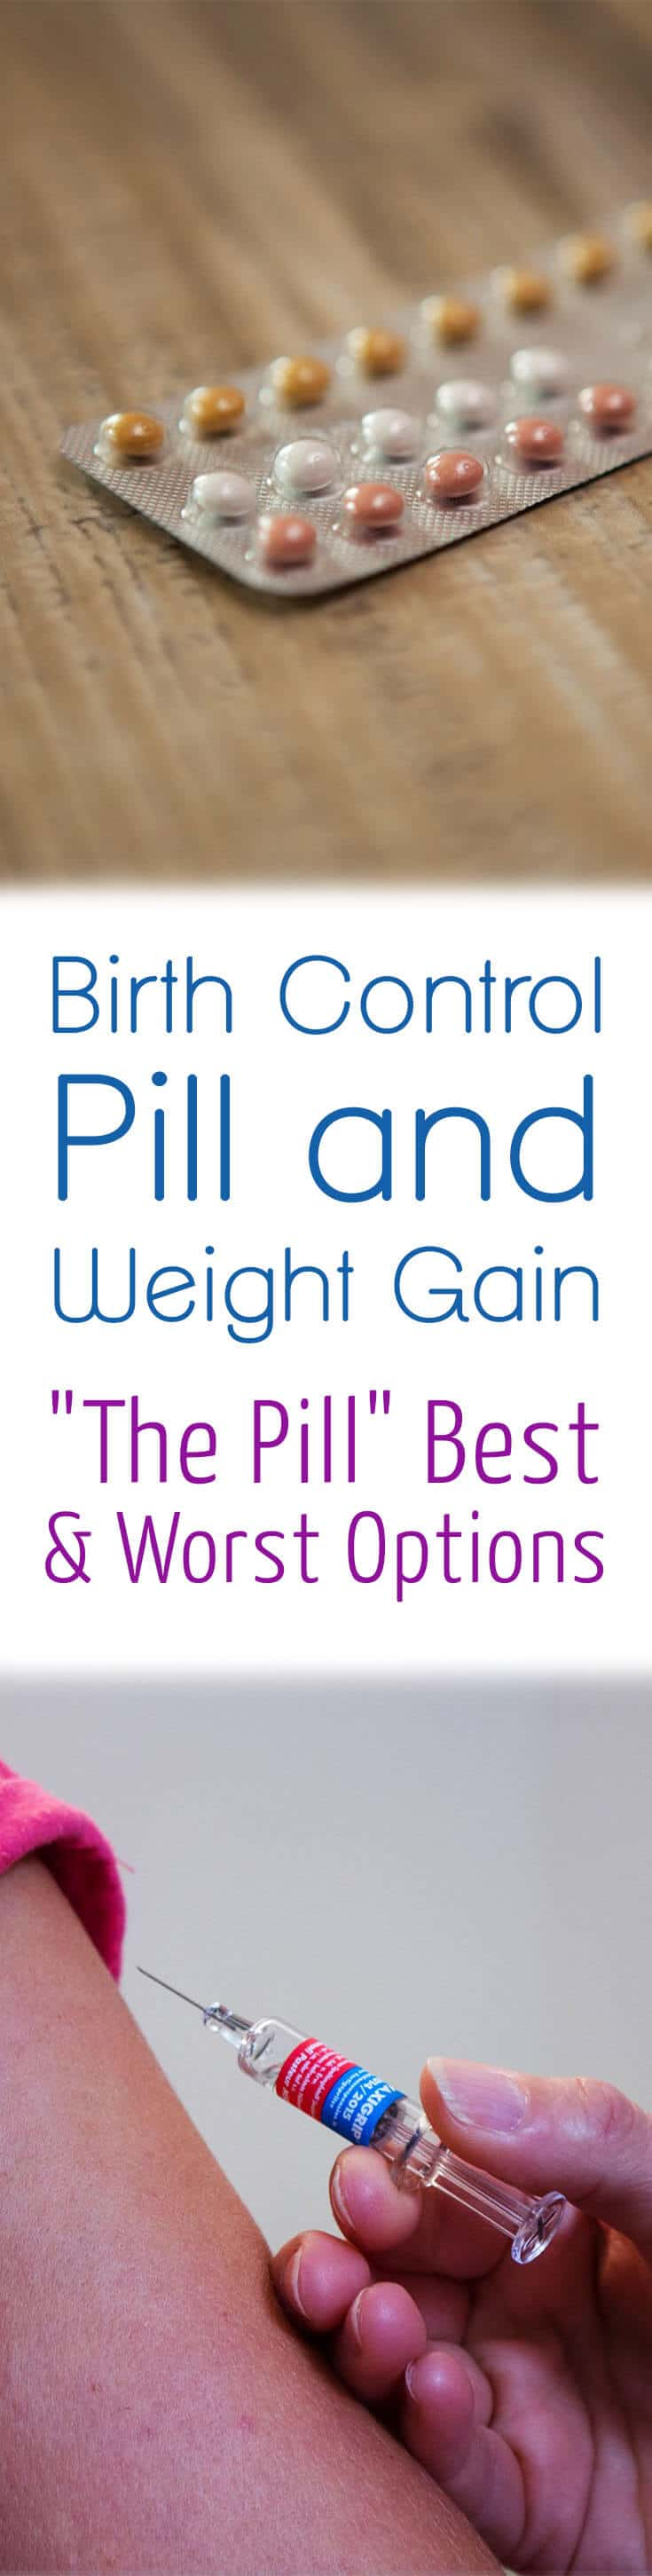 Best birth control options to avoid weight gain